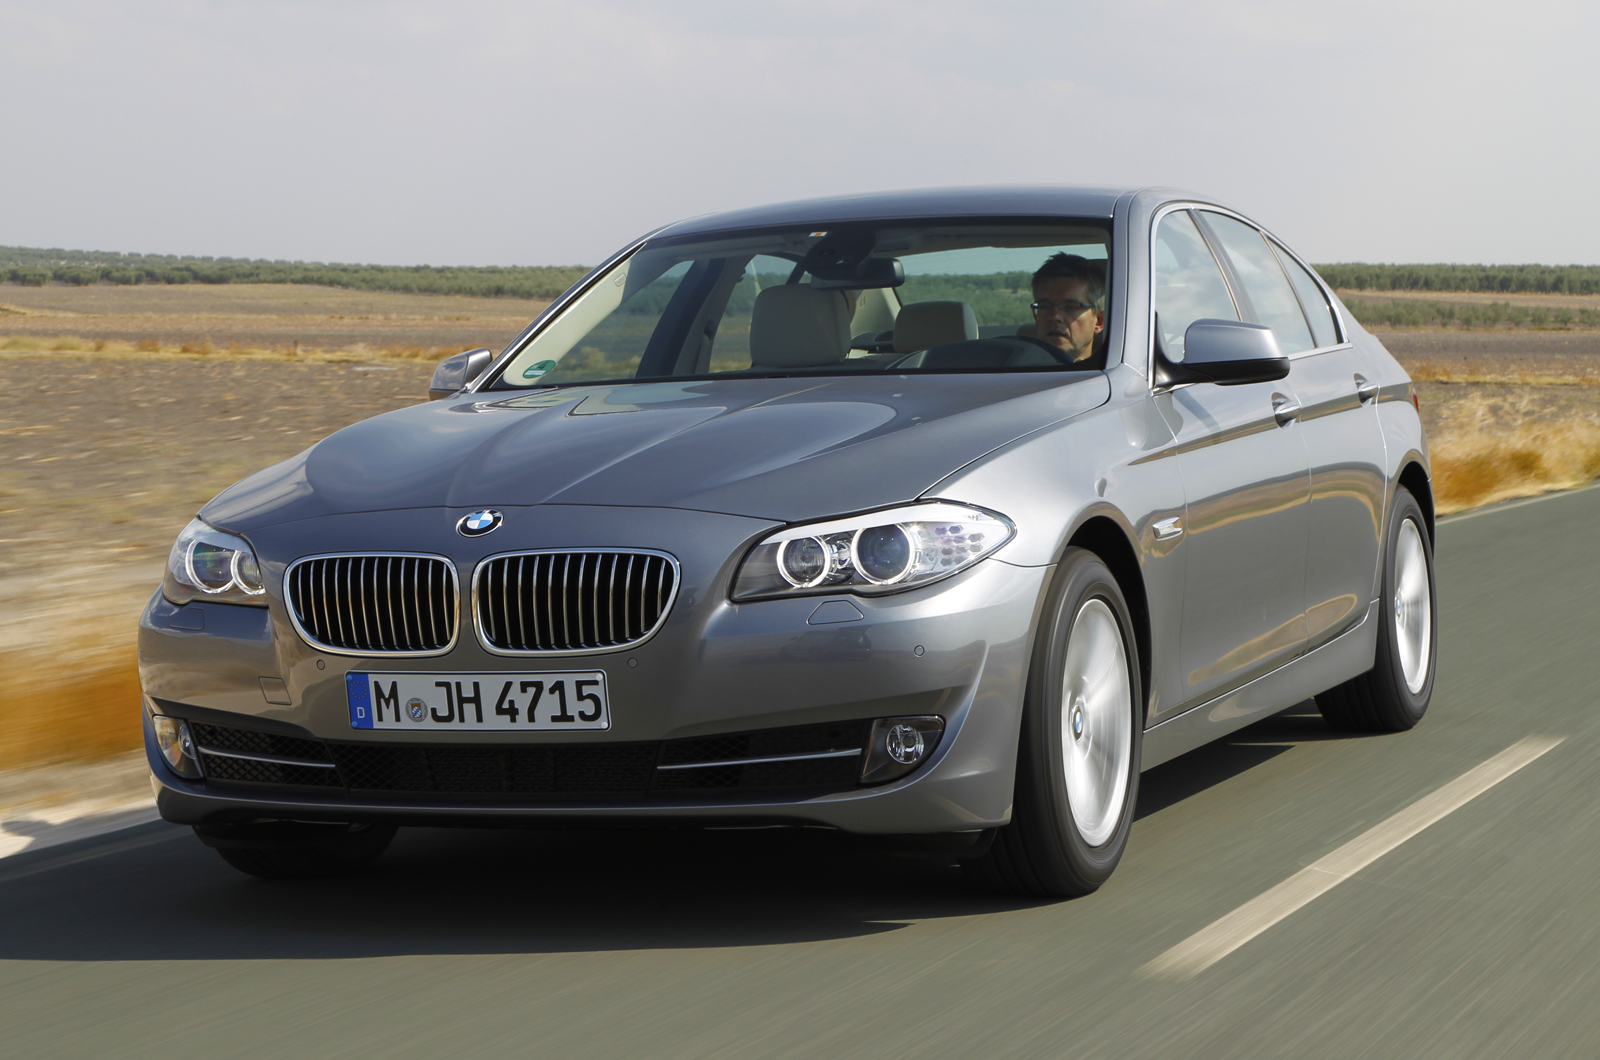 Bmw 520d deals healthkart discount coupons december 2018 bmw 520d service costs indesignore top gear reviews the bmw 5 series fandeluxe Images